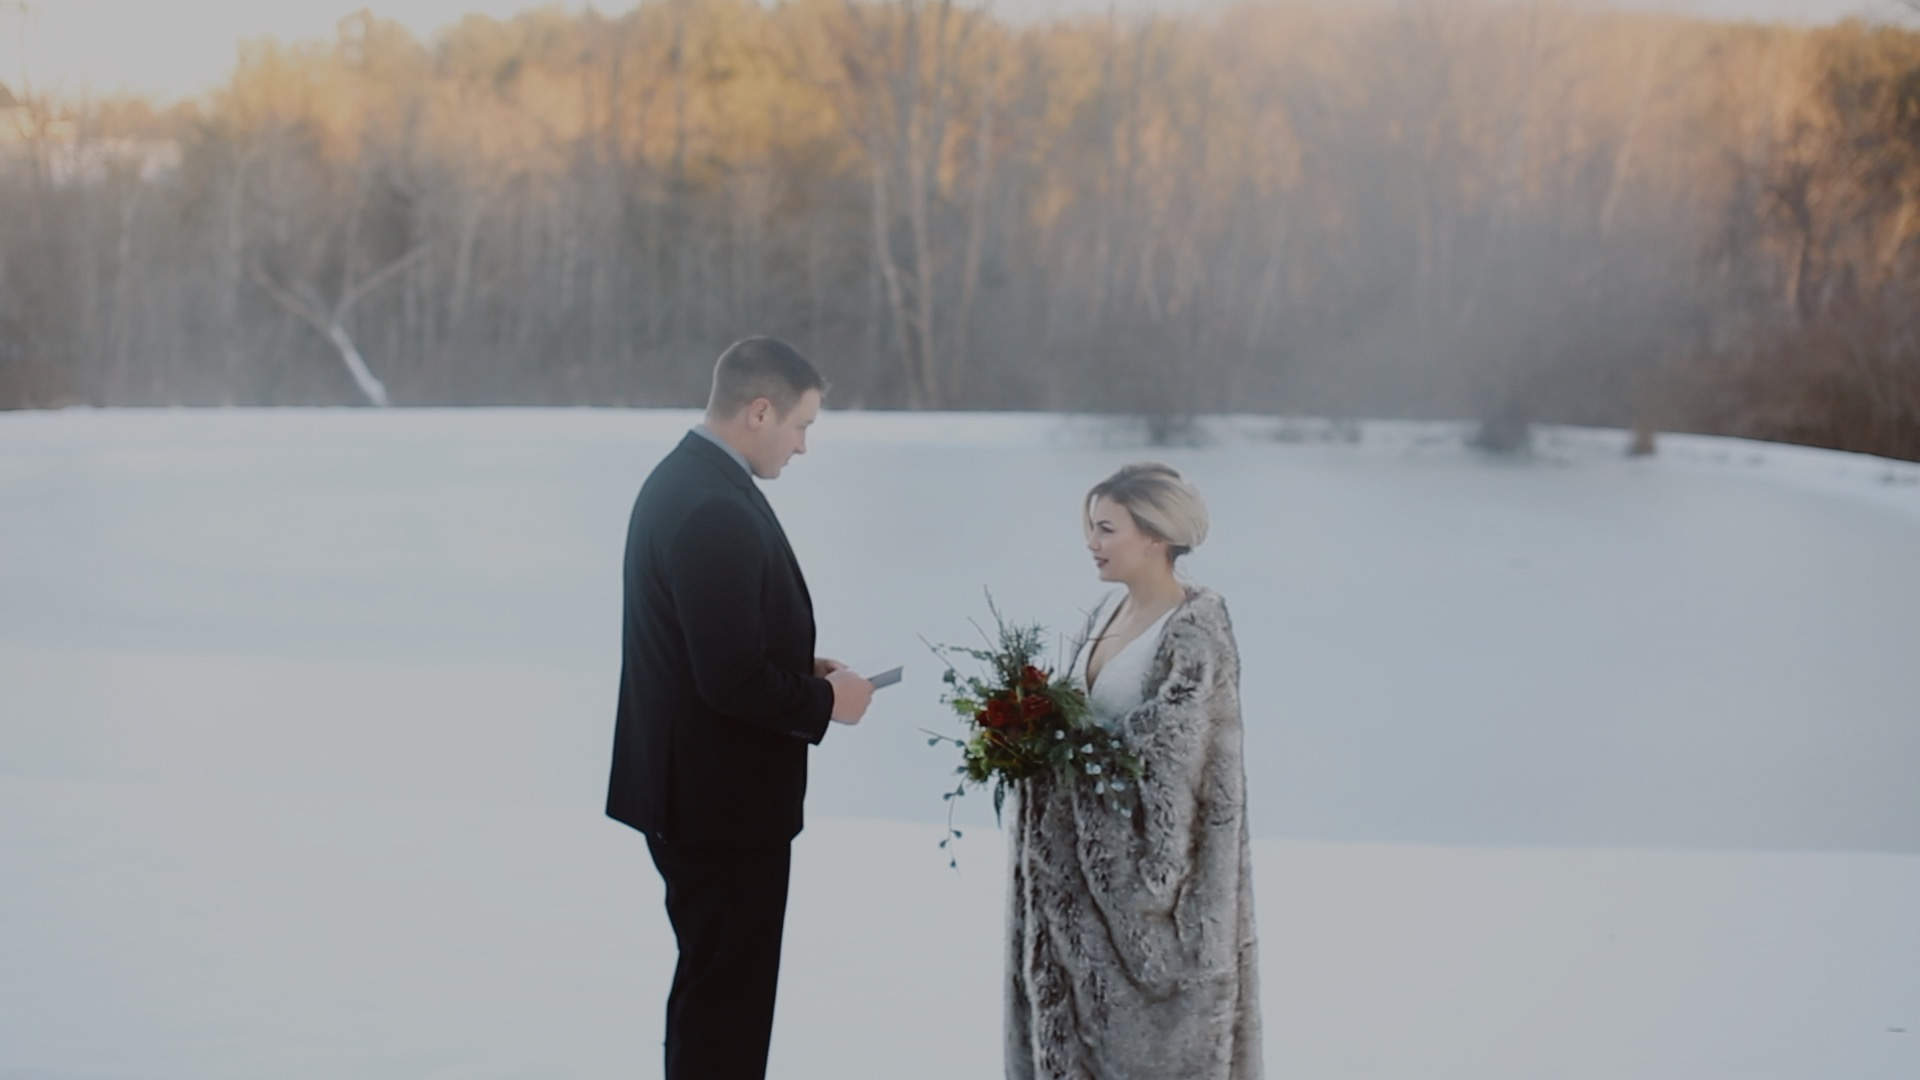 Rustic Winter Vow Renewal at M&D Farm with Gardenhouse Films